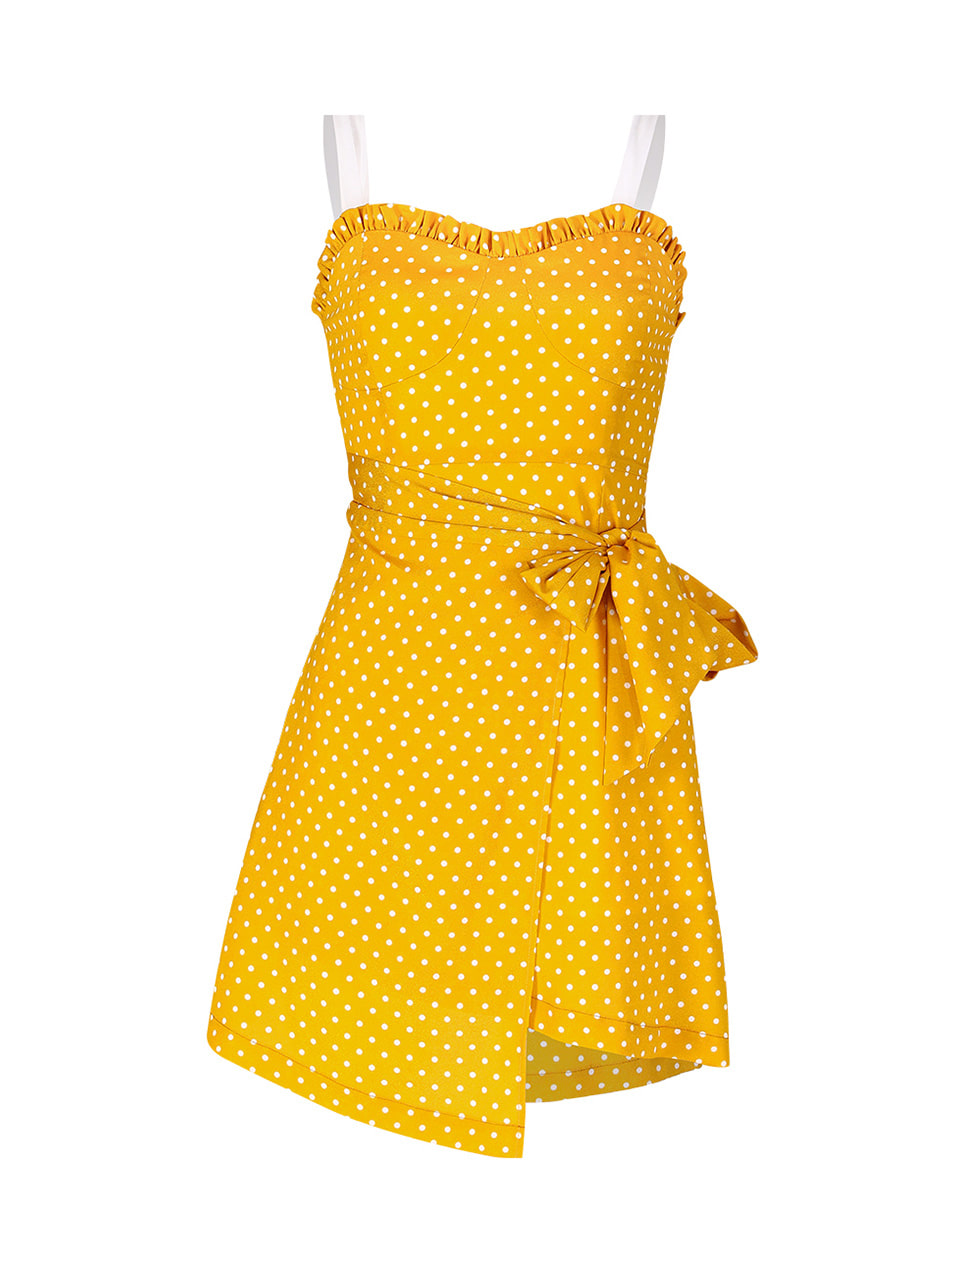 GUKAMiranda dotted Dress